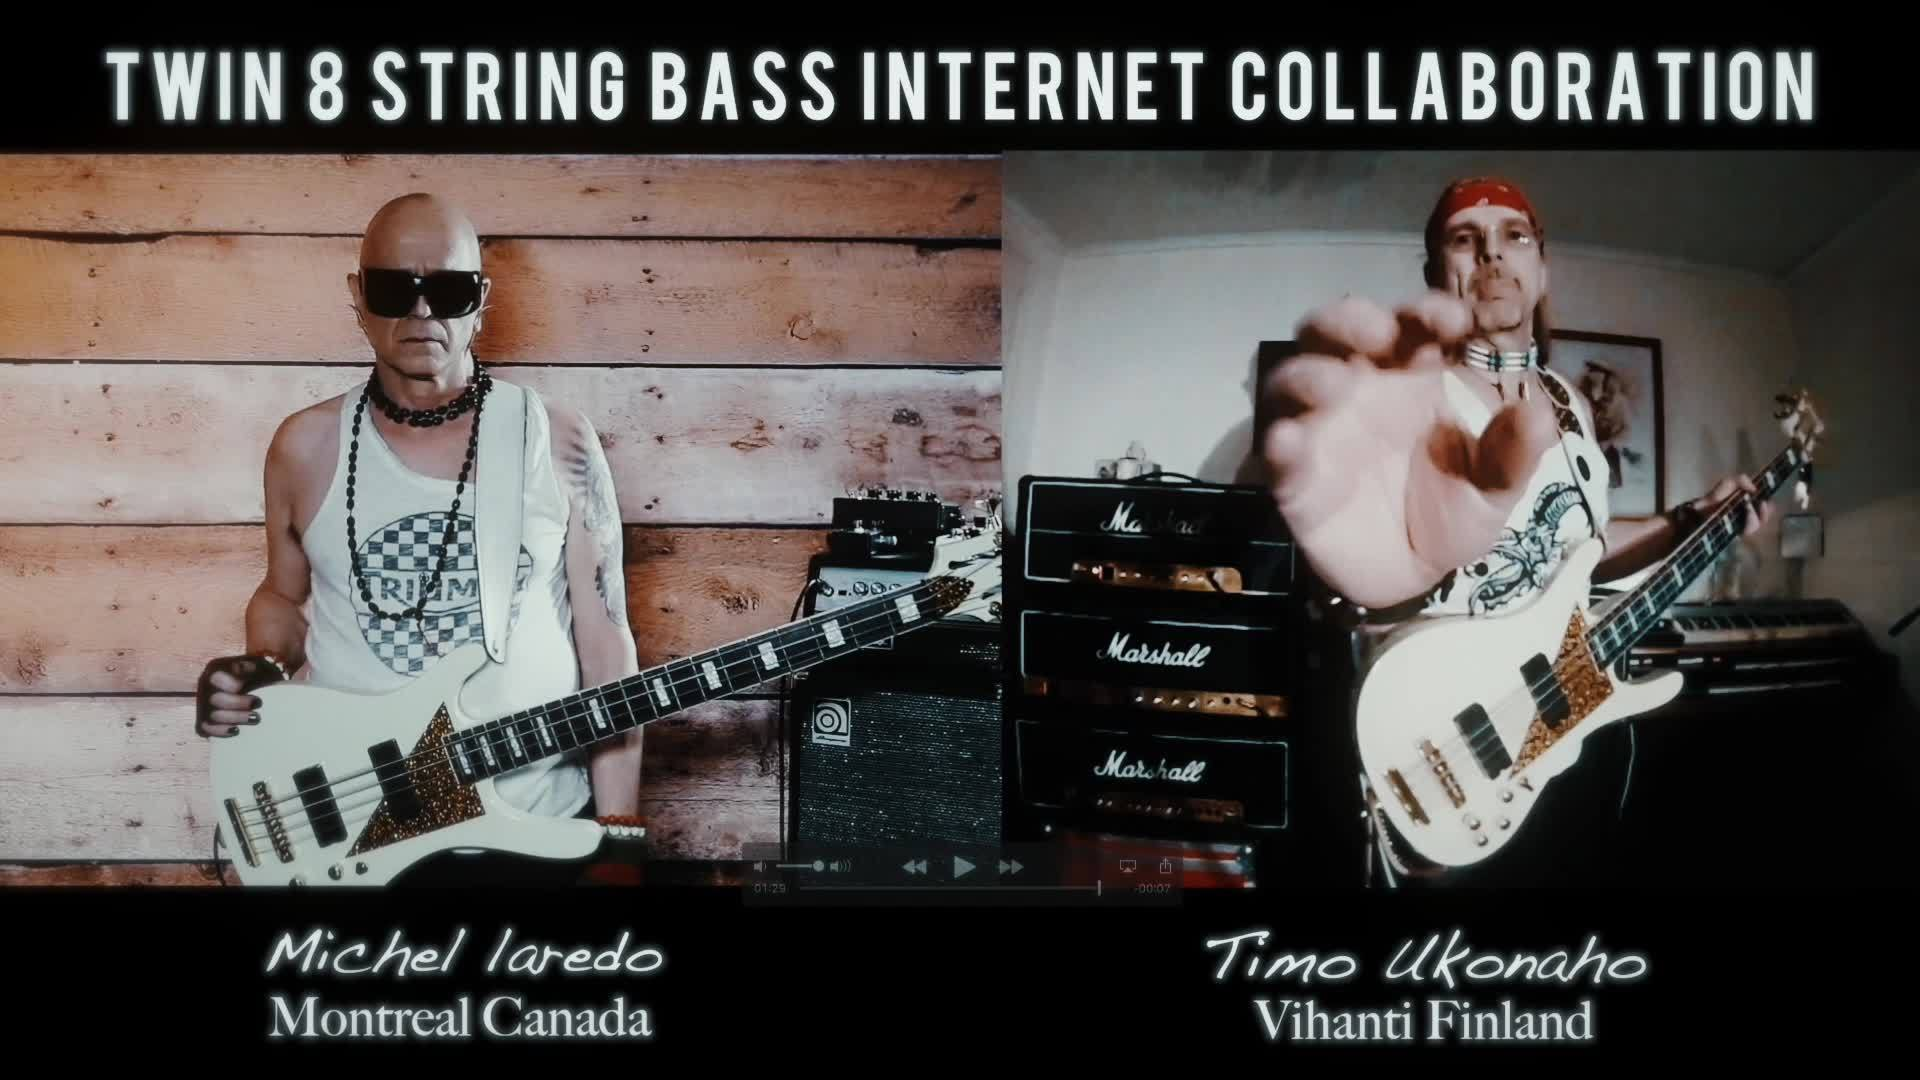 TWIN 8 STRING BASS JAM COLLABORATION It is my honour to Jam with my bass twin brother Timo Ukonaho from Finland, such an awesome guy and great player. Thank you  for joining forces with me in supporting the 8 string bass movement . GUYS Please share